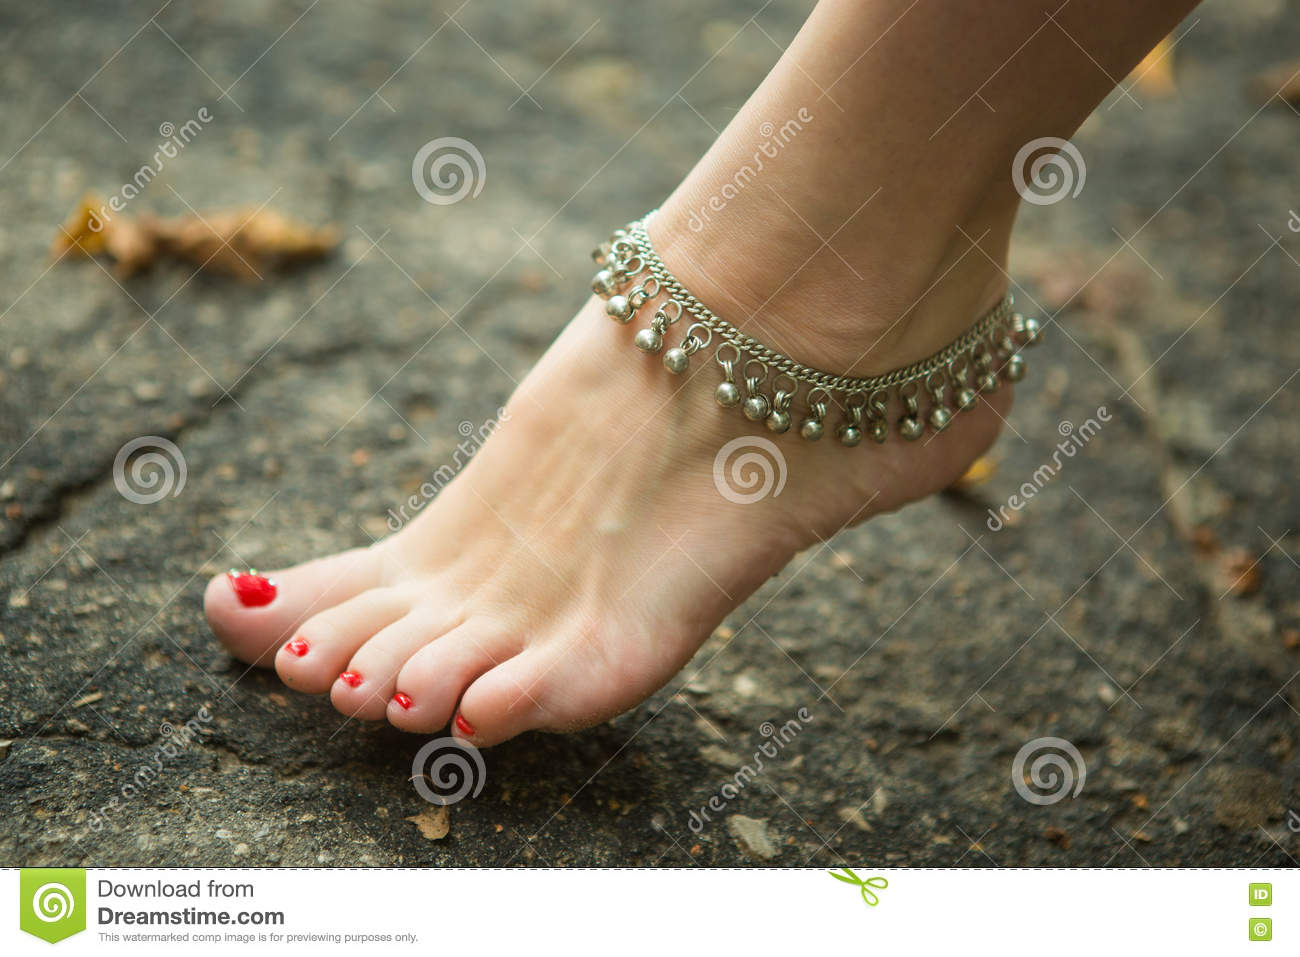 feet of women in ethnic ornaments stock image - image of erotic